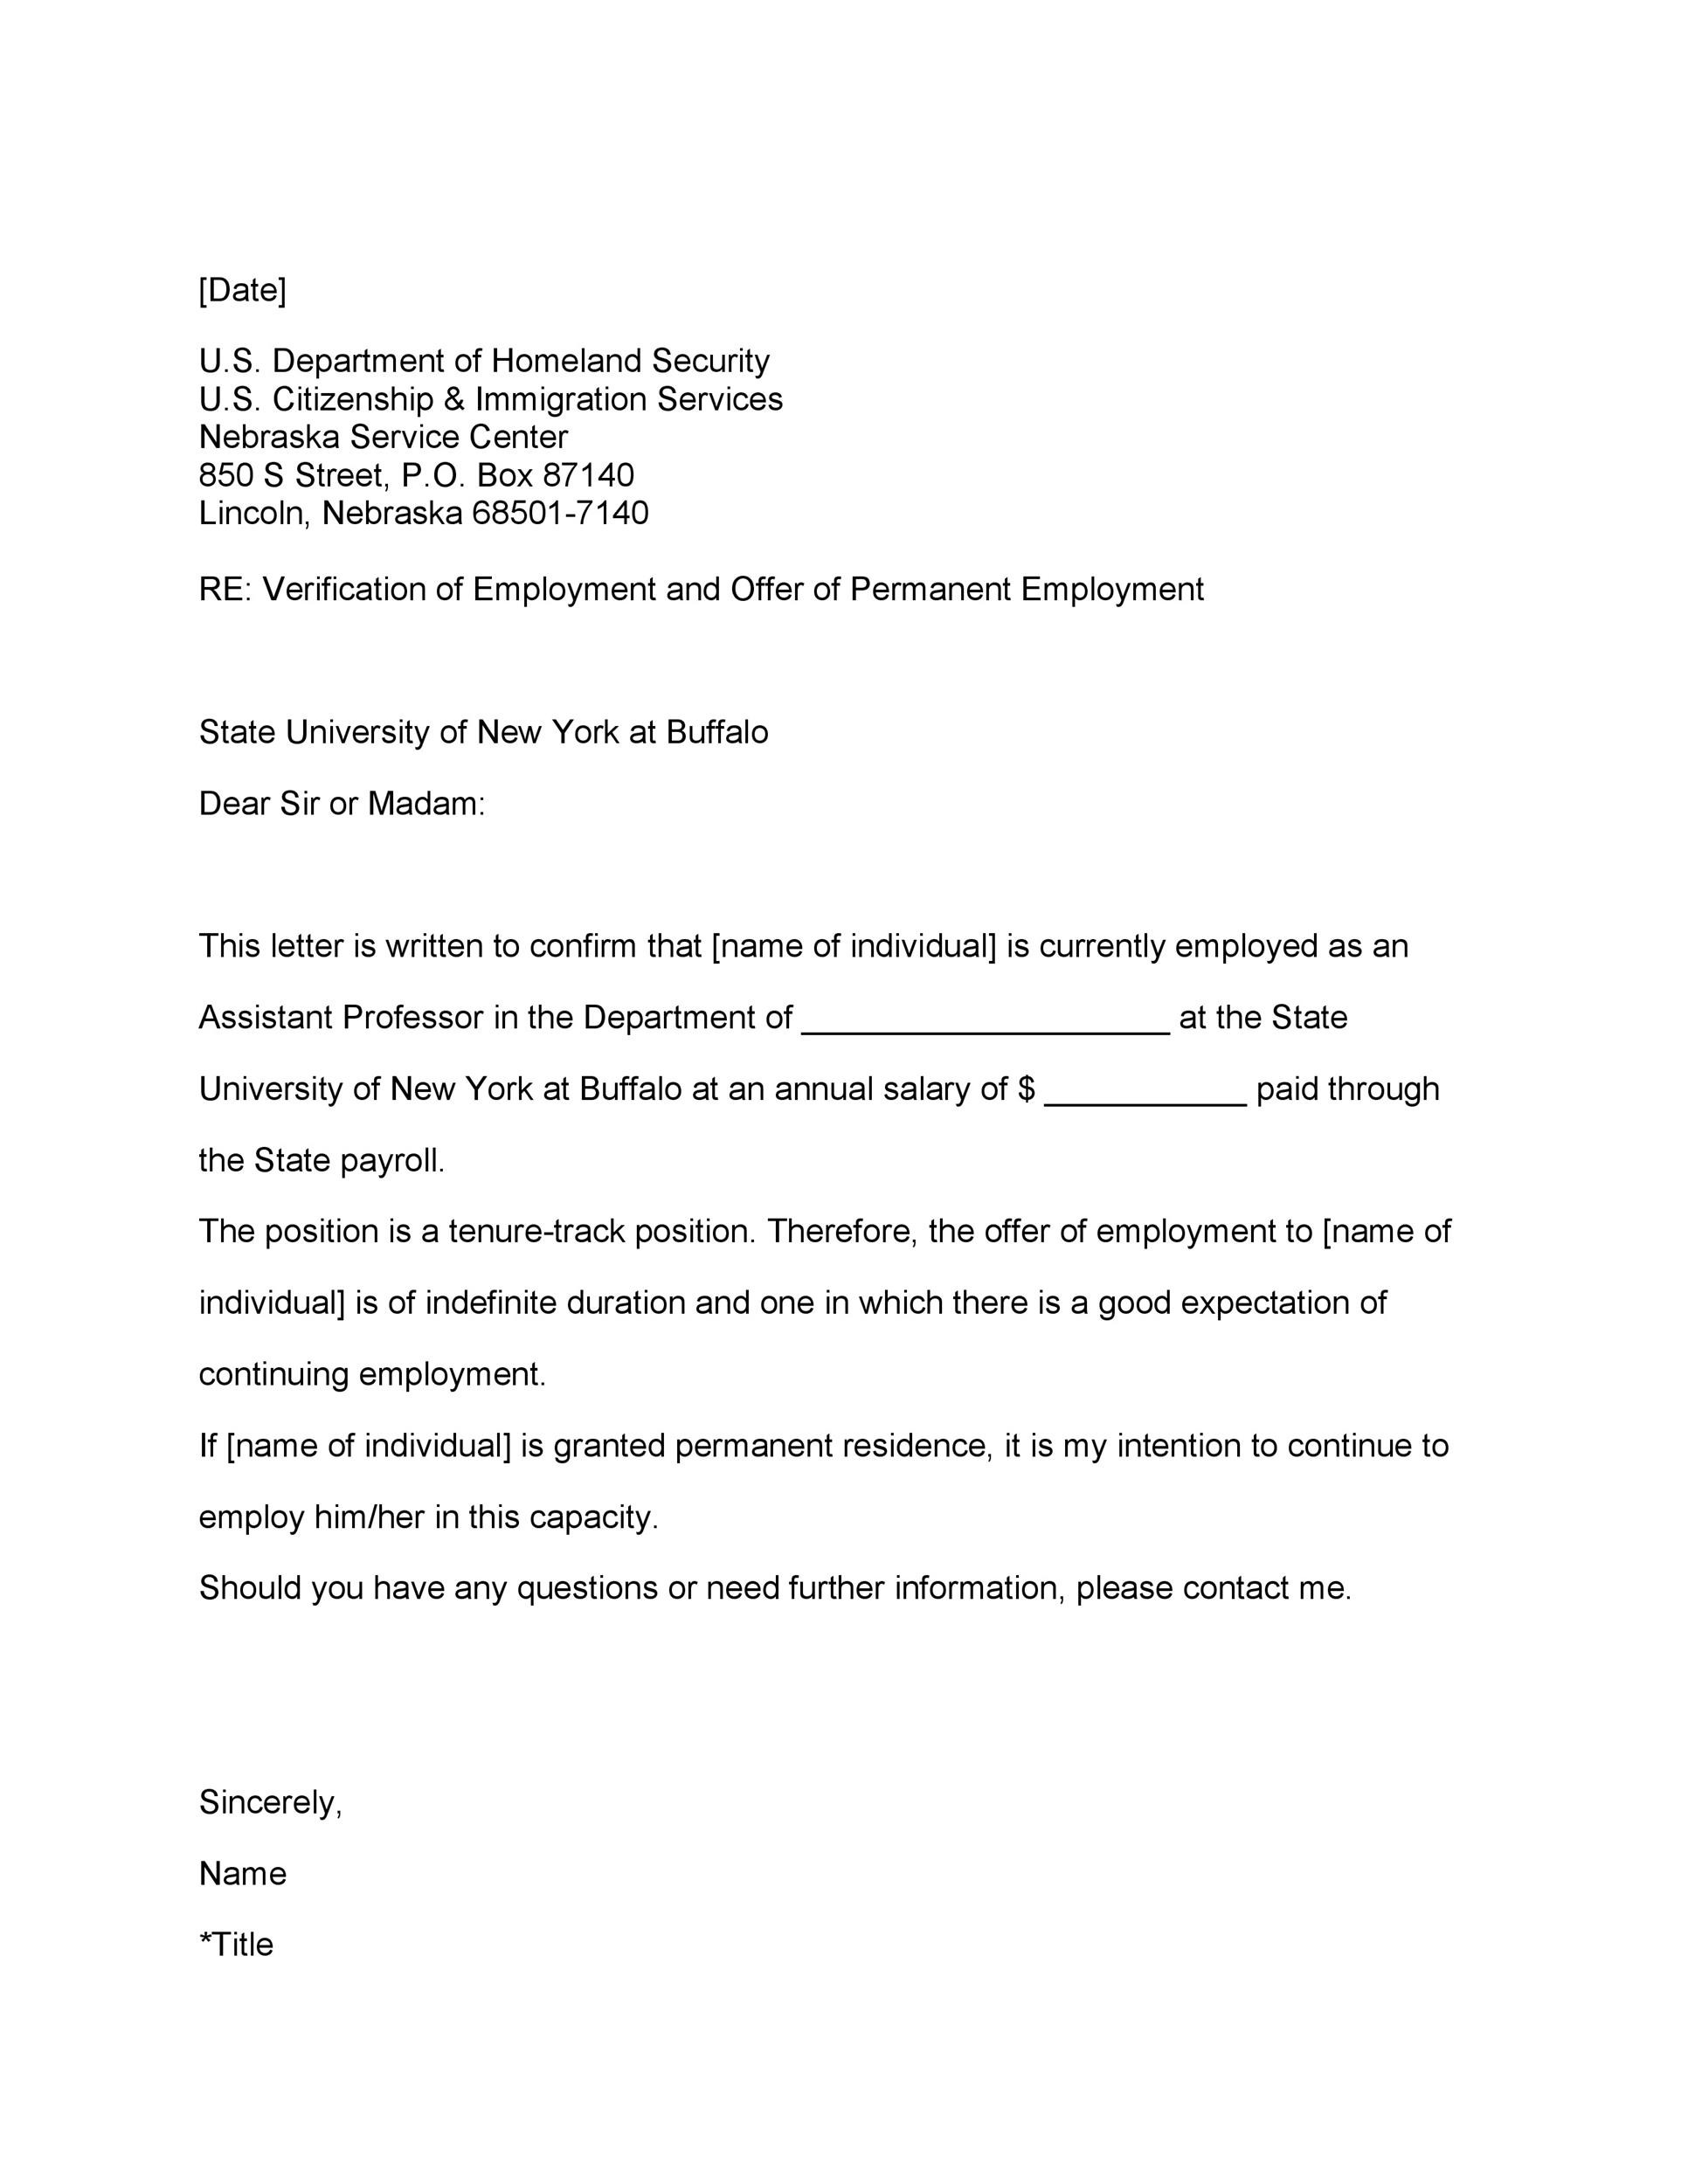 40 Proof of Employment Letters, Verification Forms  Samples - letter of employment template